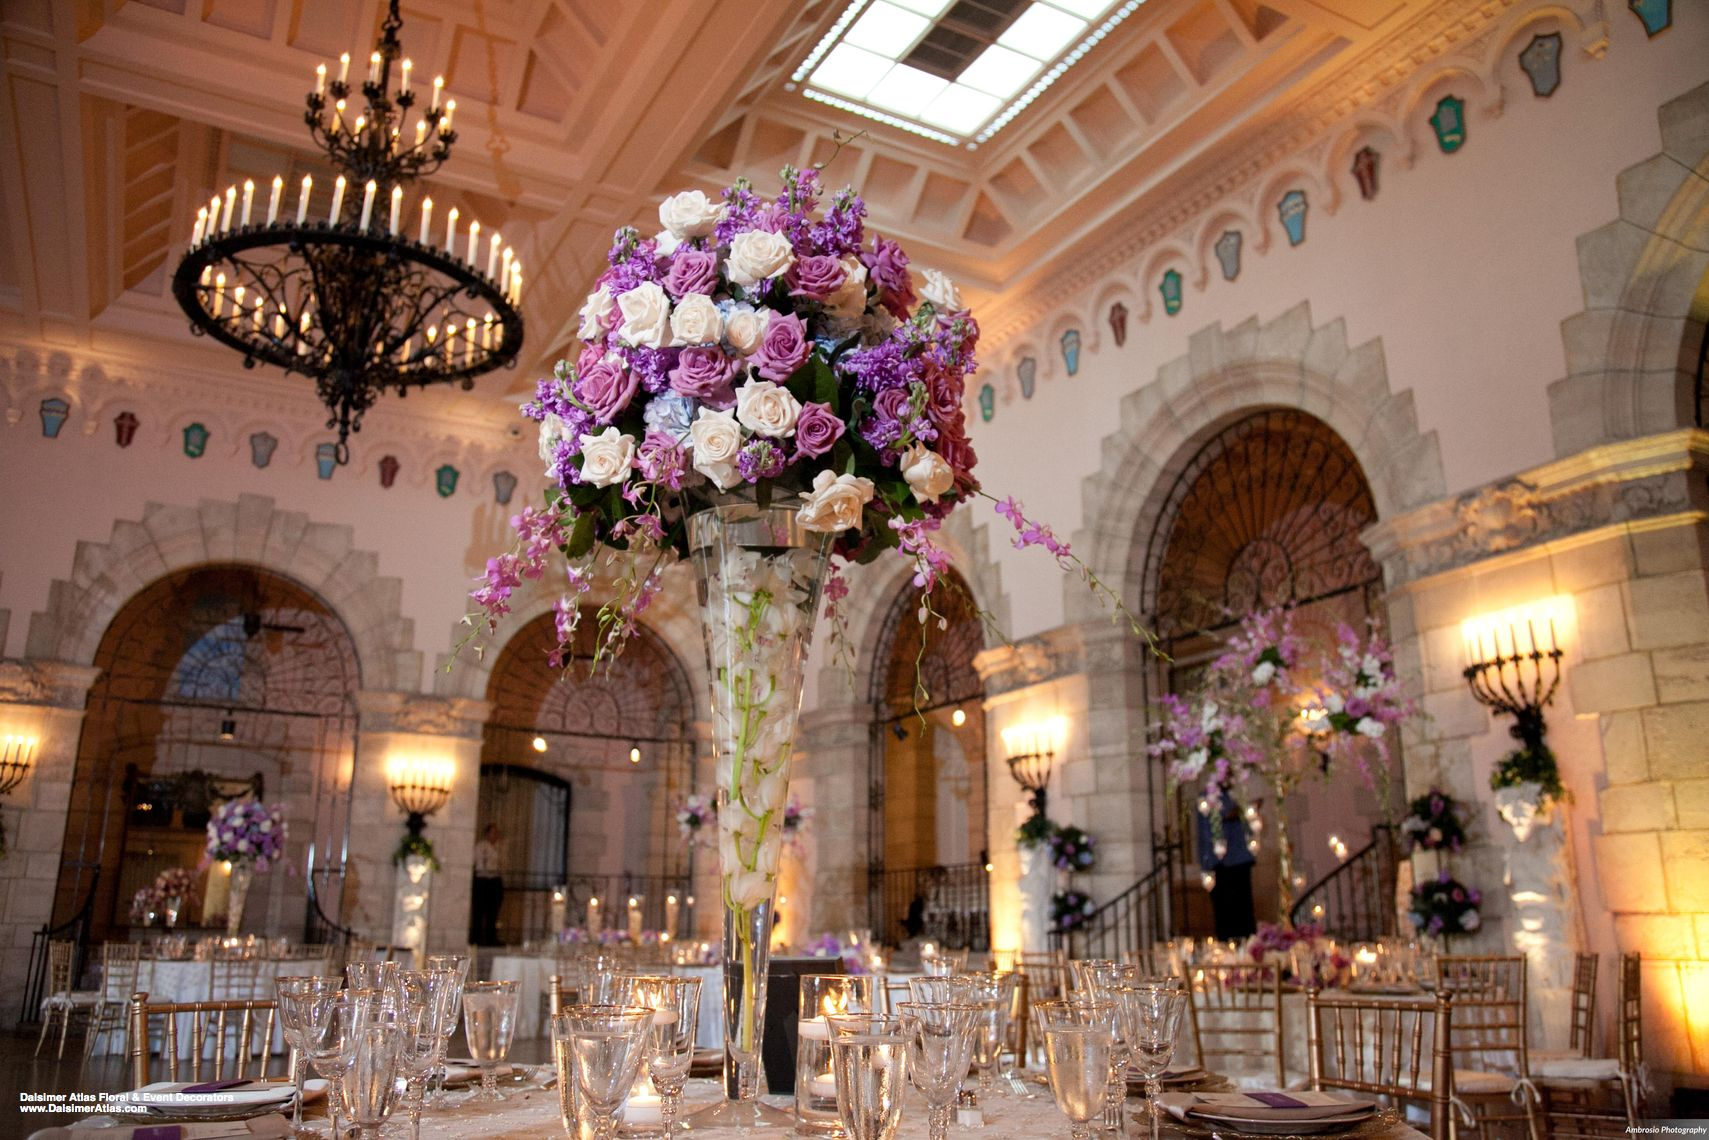 wedding-florist-flowers-decorations-wedding-flagler-museum-palm-beach-florida-dalsimer-atlas-21